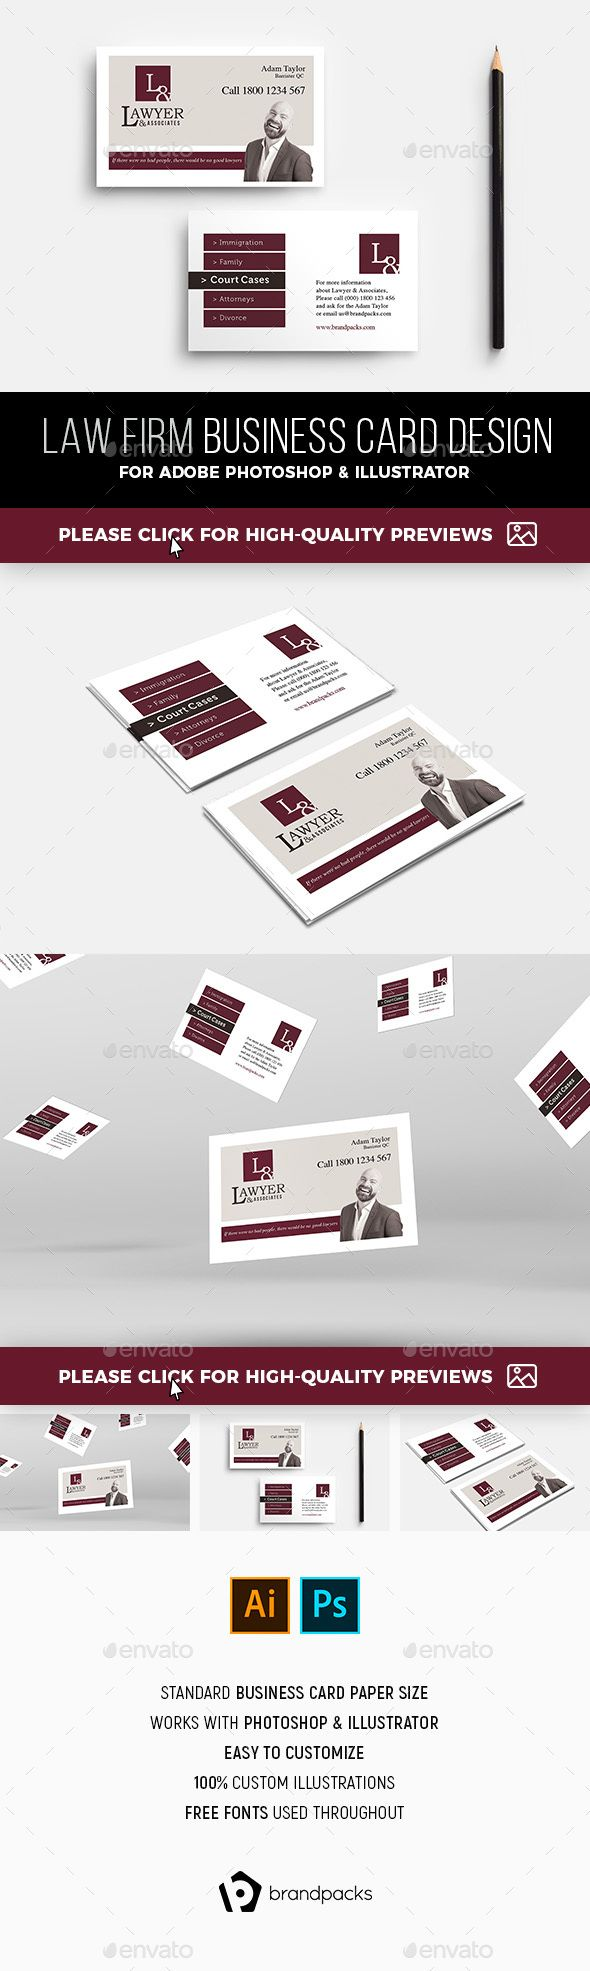 Law firm business card template corporate flyers business card law firm business card template corporate flyers reheart Images